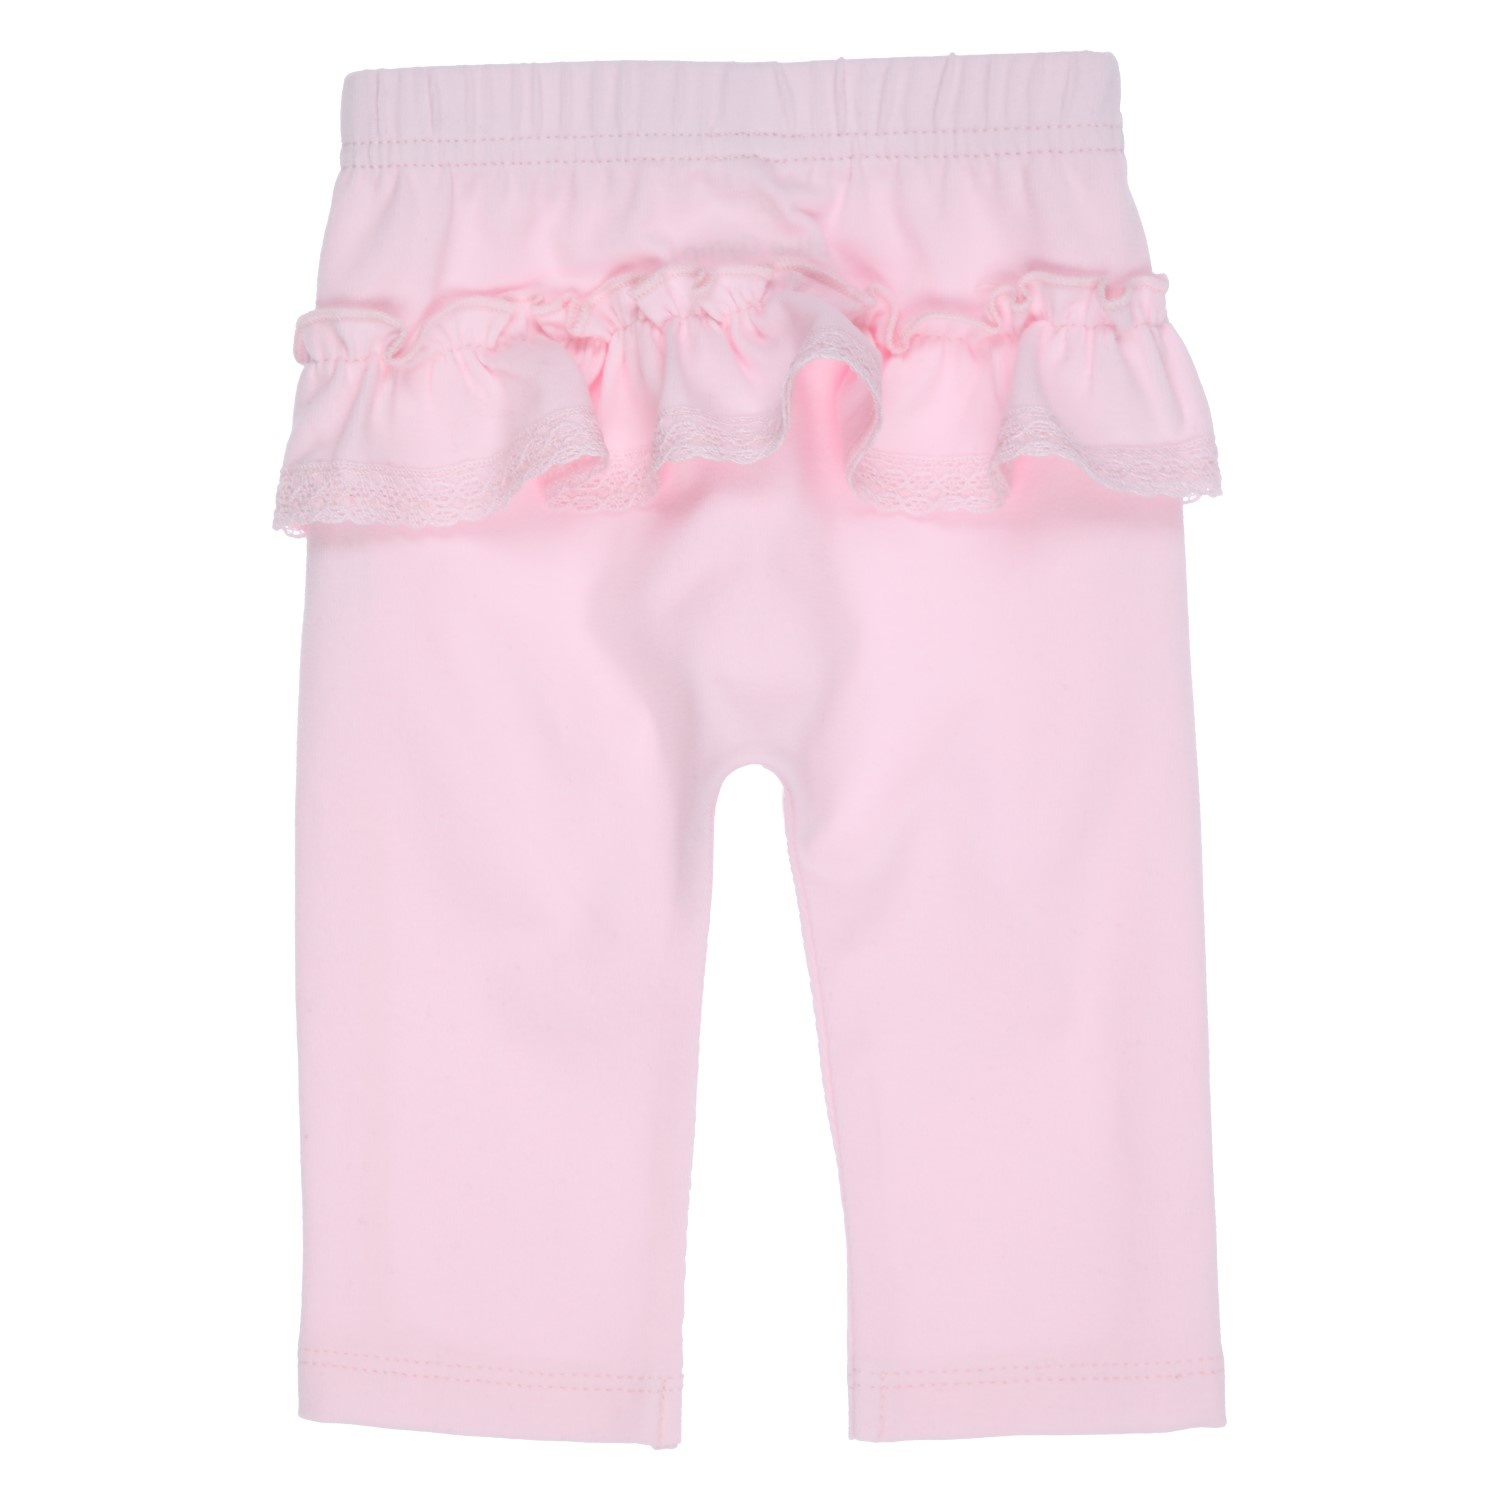 Gymp Gymp Pink Frill Trousers - 1752